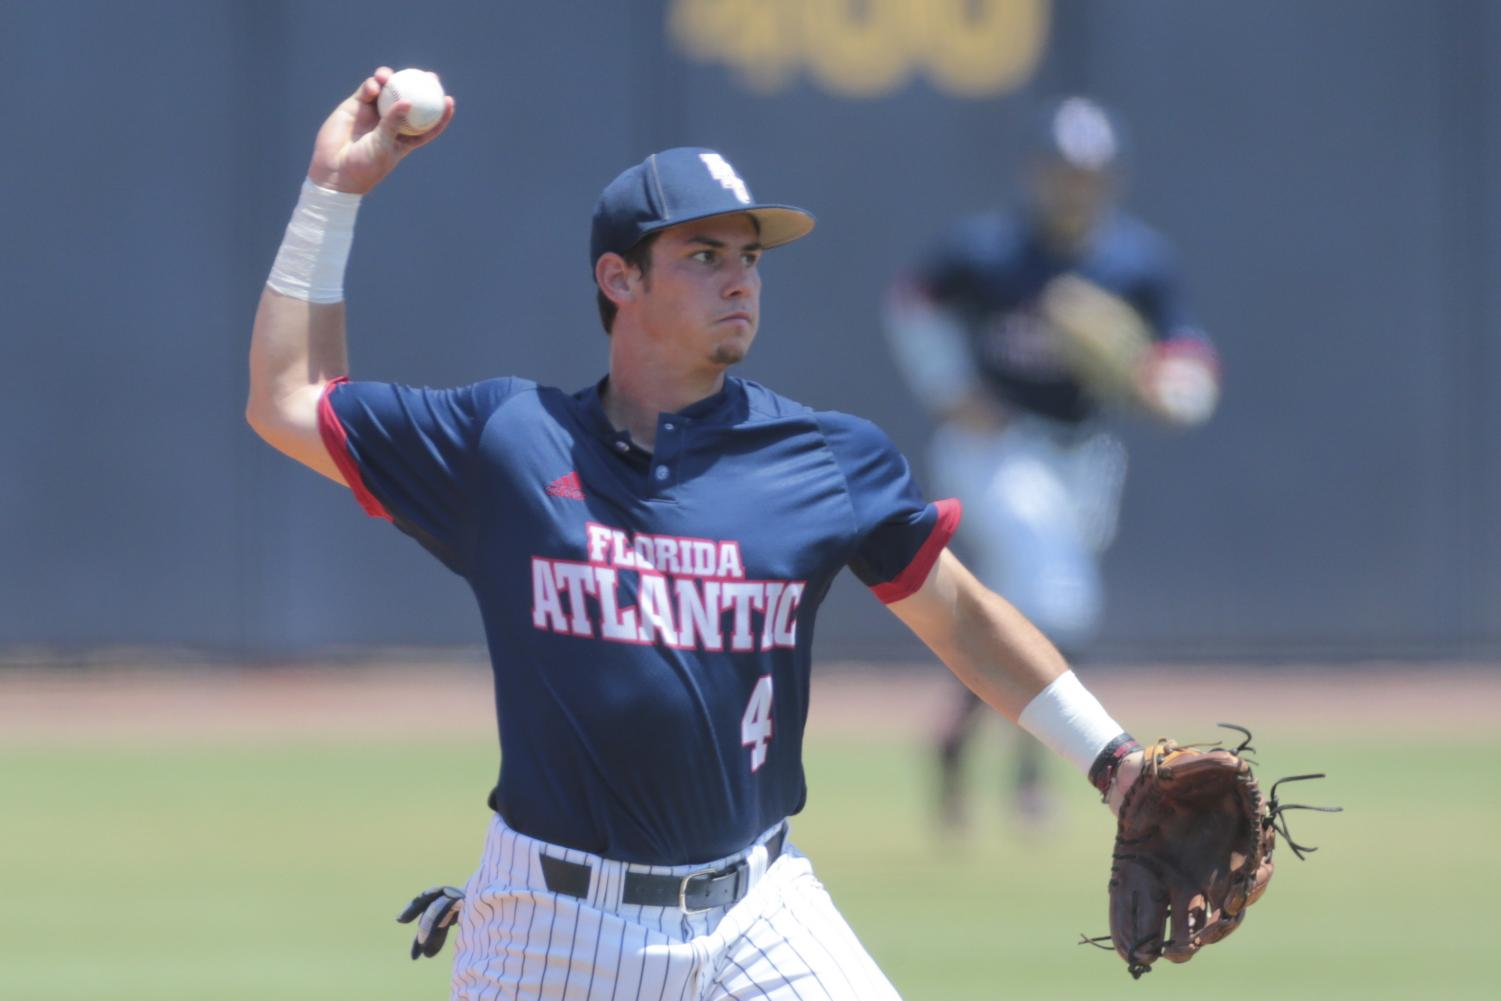 Infielder Wilfredo Alvarez and FAU are heading to Athens, Ga., for a NCAA baseball tournament matchup with FSU. Jordan Foreman/Conference USA